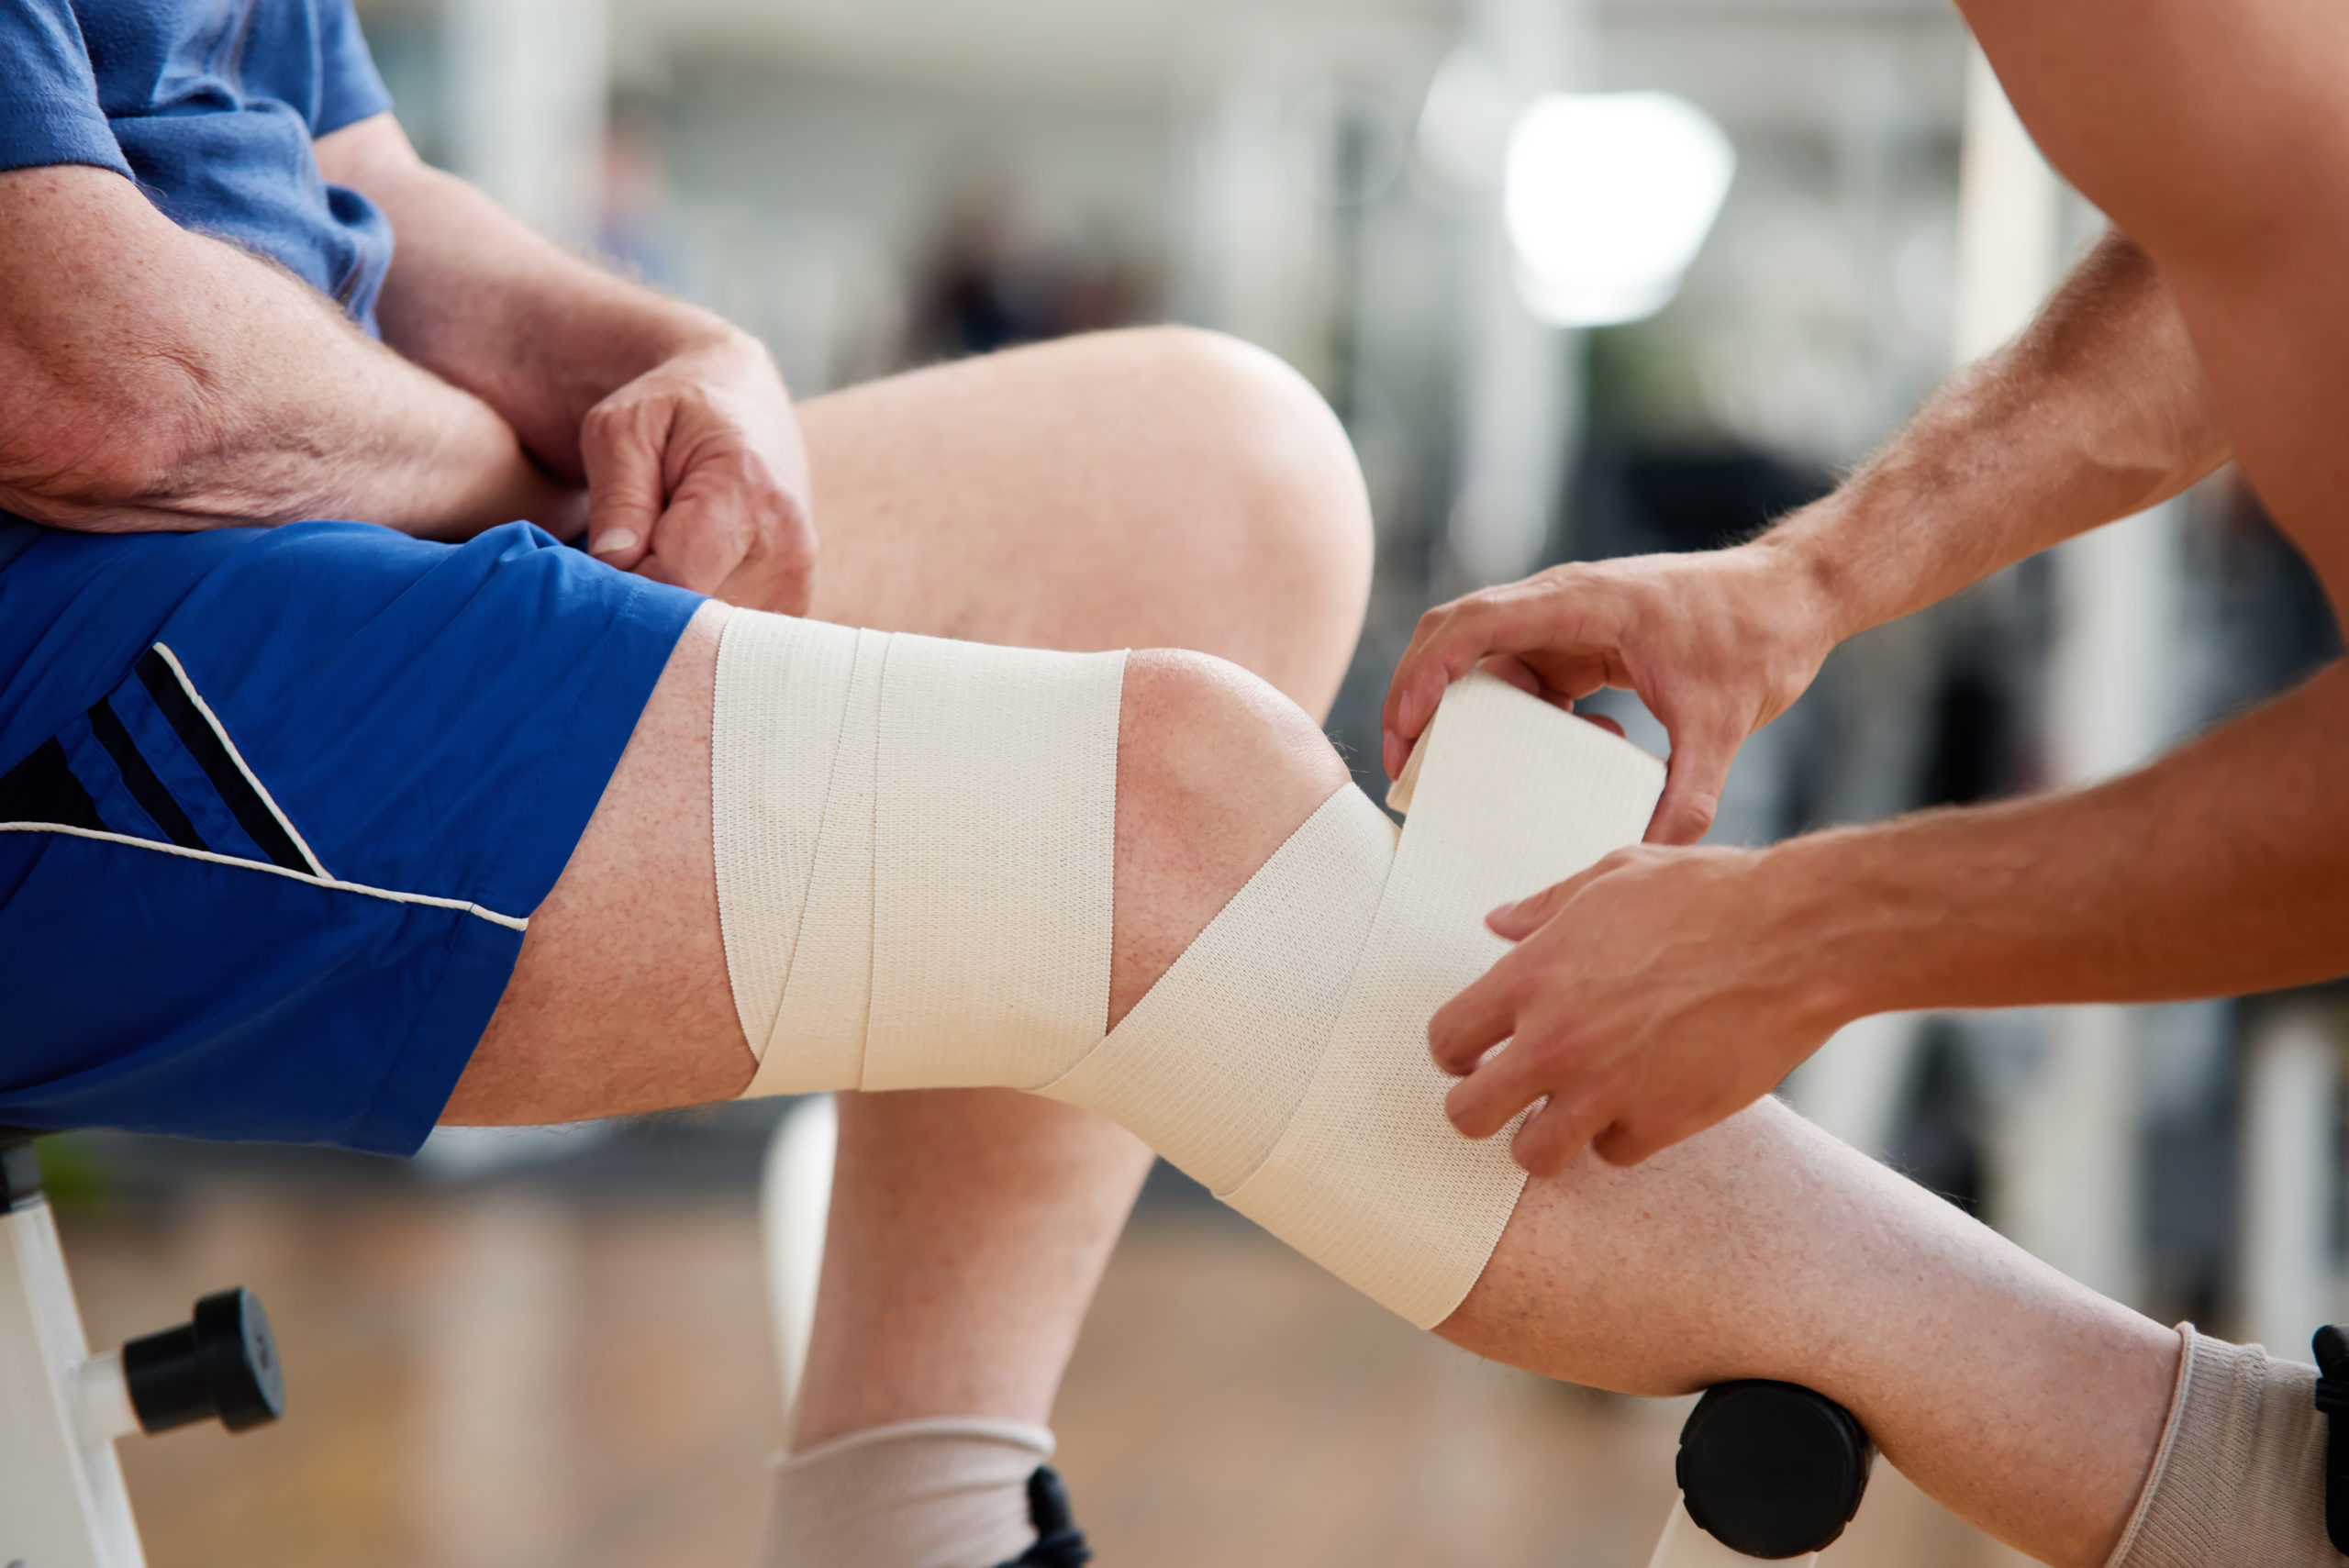 Athletic trainer wraps an athlete's leg with a support bandage after an injury.